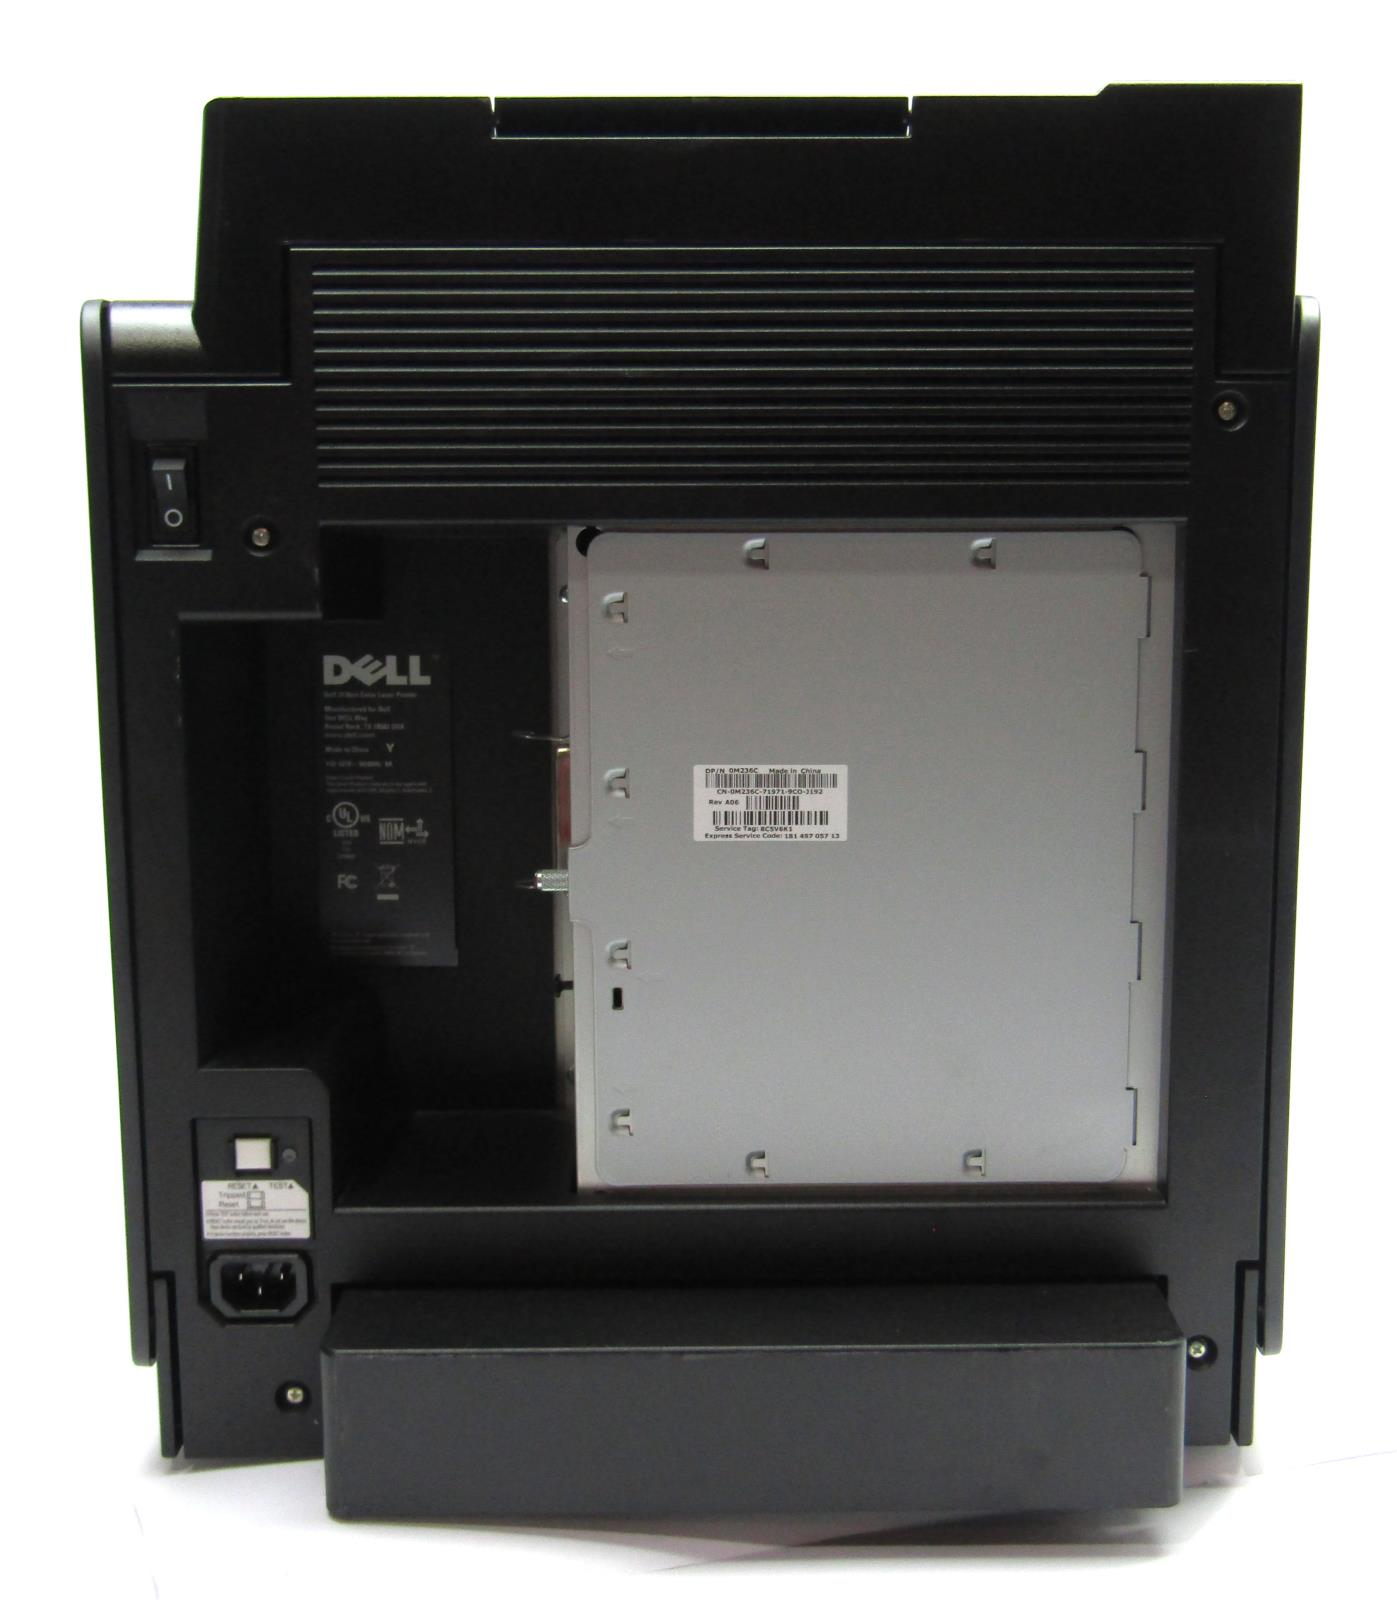 dell 3130cn user manual simple instruction guide books u2022 rh firstservicemanual today Dell 3130Cn Transfer Belt dell 3130cn service manual